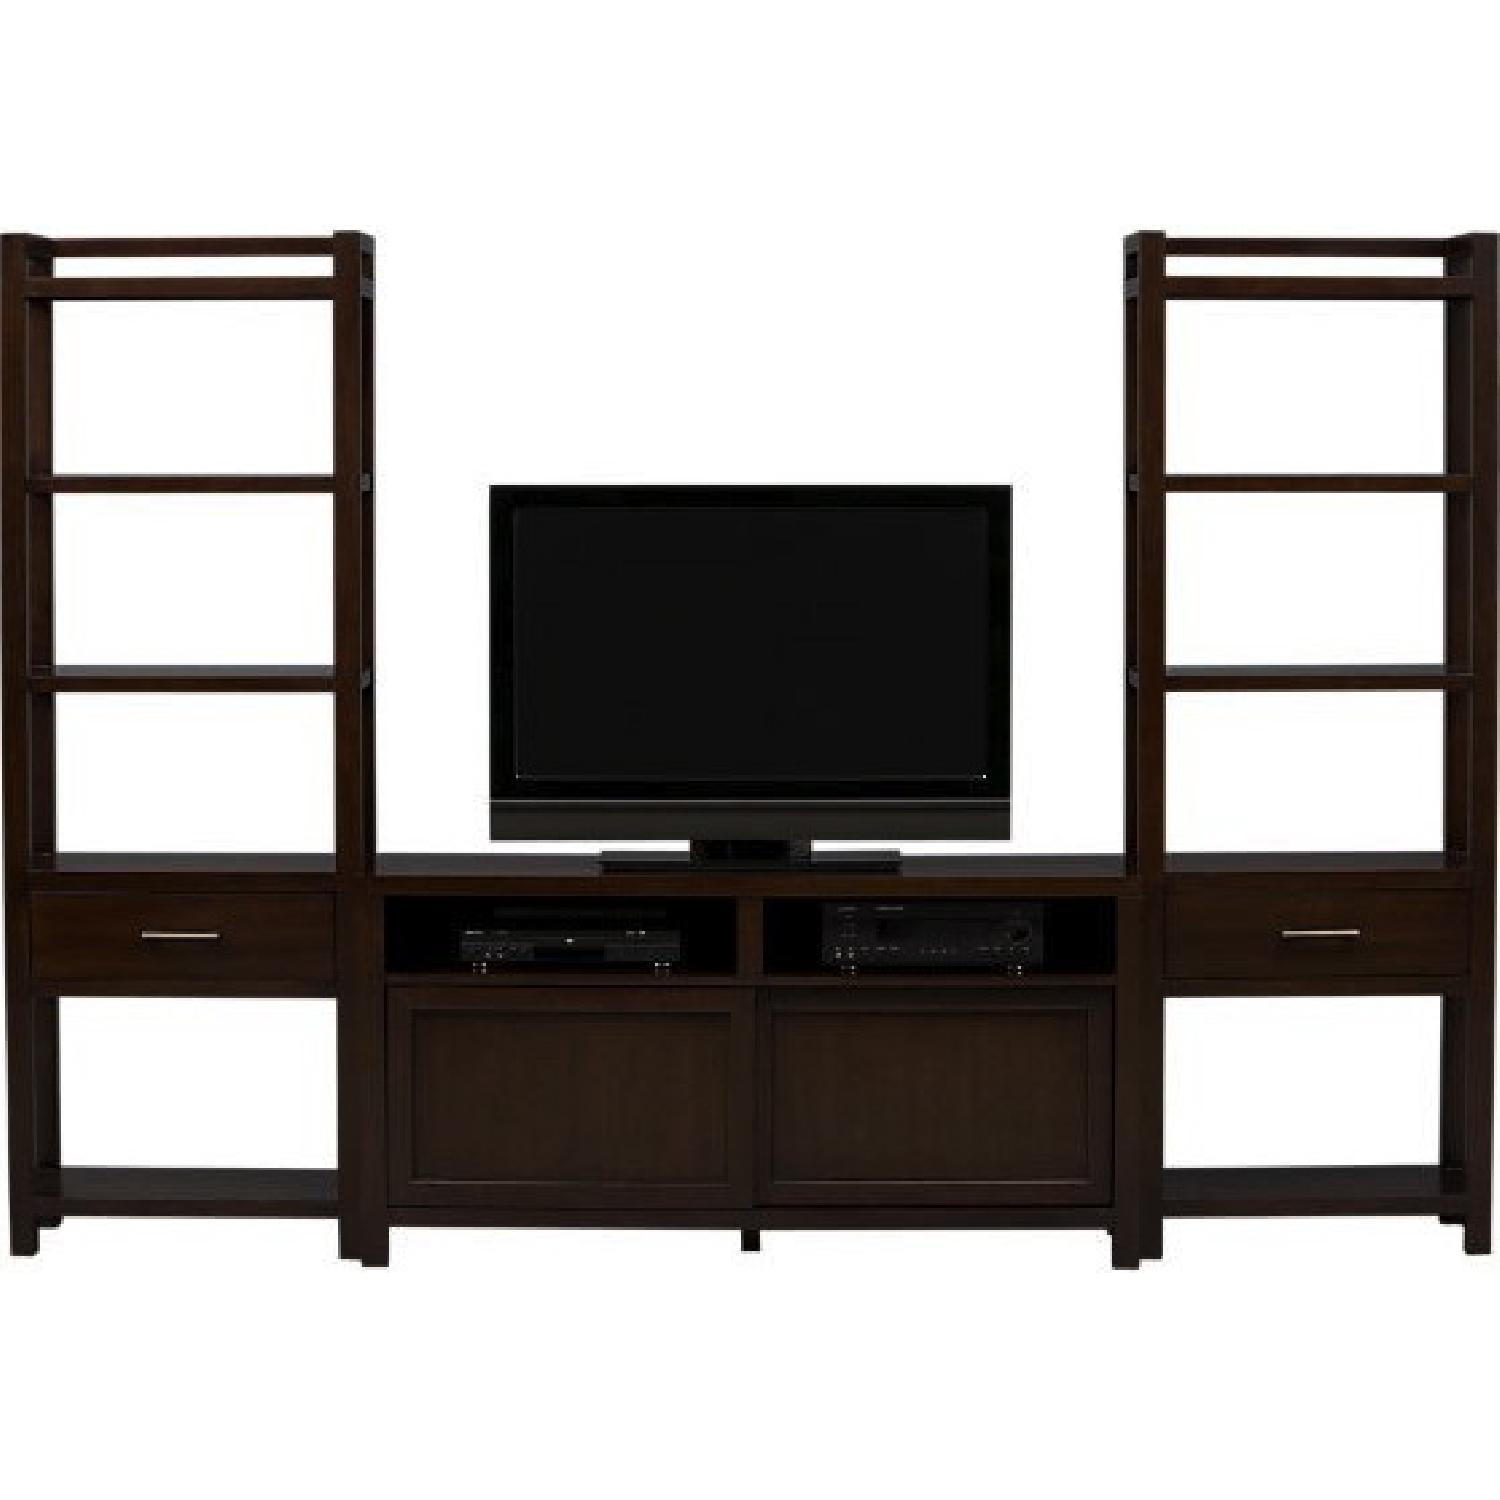 Crate & Barrel Media Console w/ 2 Media Towers - image-4